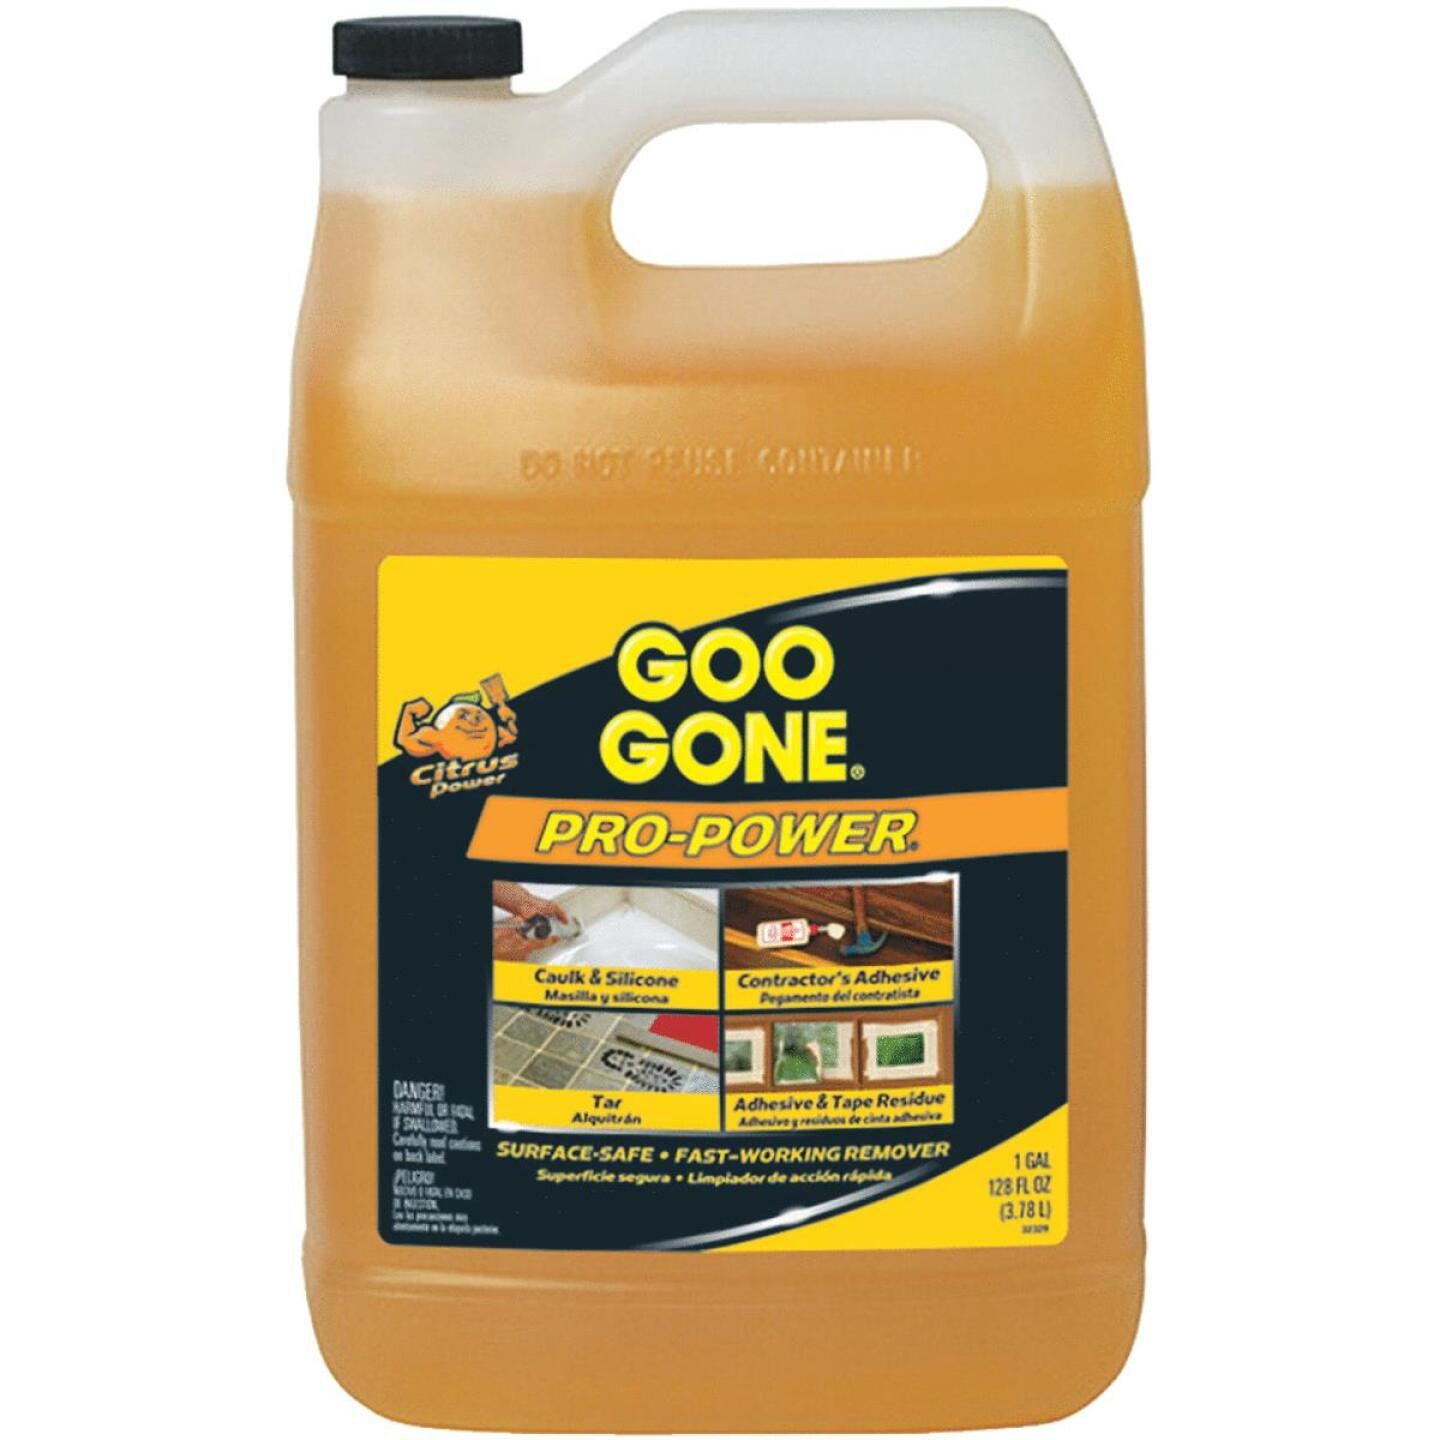 Goo Gone 1 Gal. Pro-Power Adhesive Remover Image 131